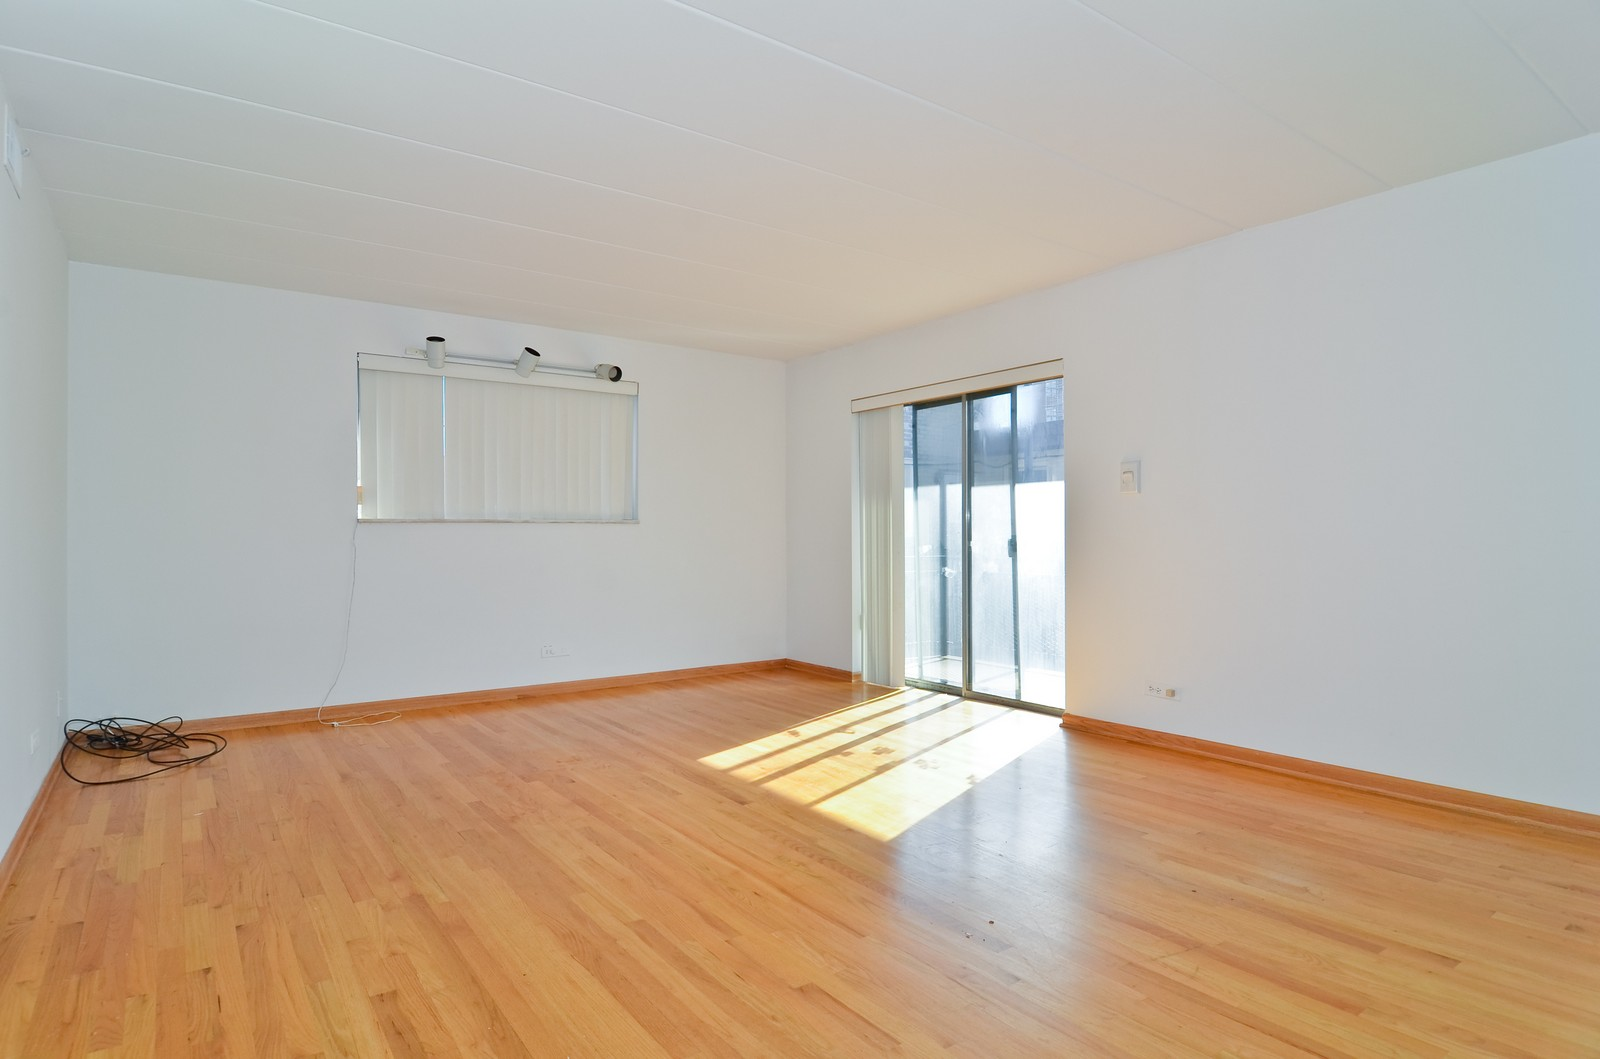 Real Estate Photography - 7457 N Sheridan Rd, Unit 3B, Chicago, IL, 60626 - Living Room